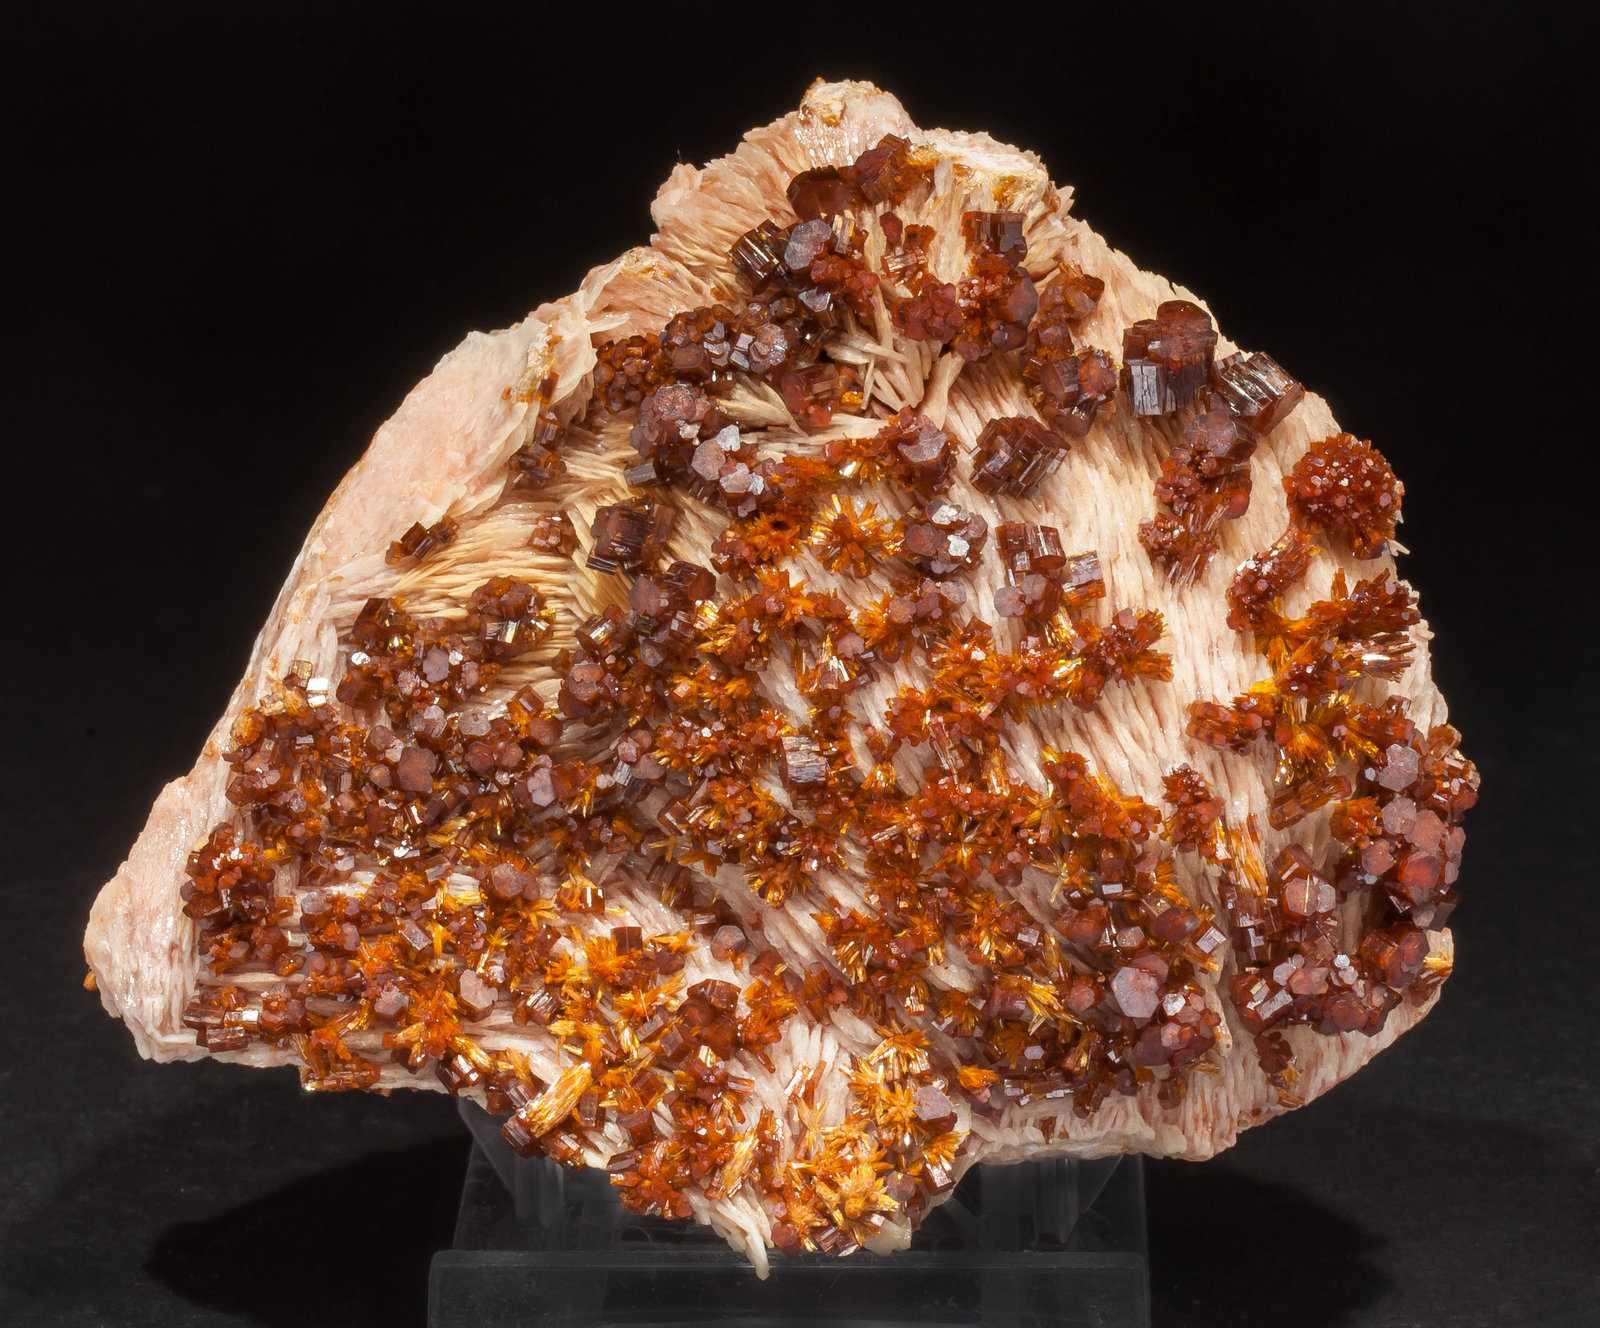 specimens/s_imagesAM0/Vanadinite-EH17AM0f.jpg